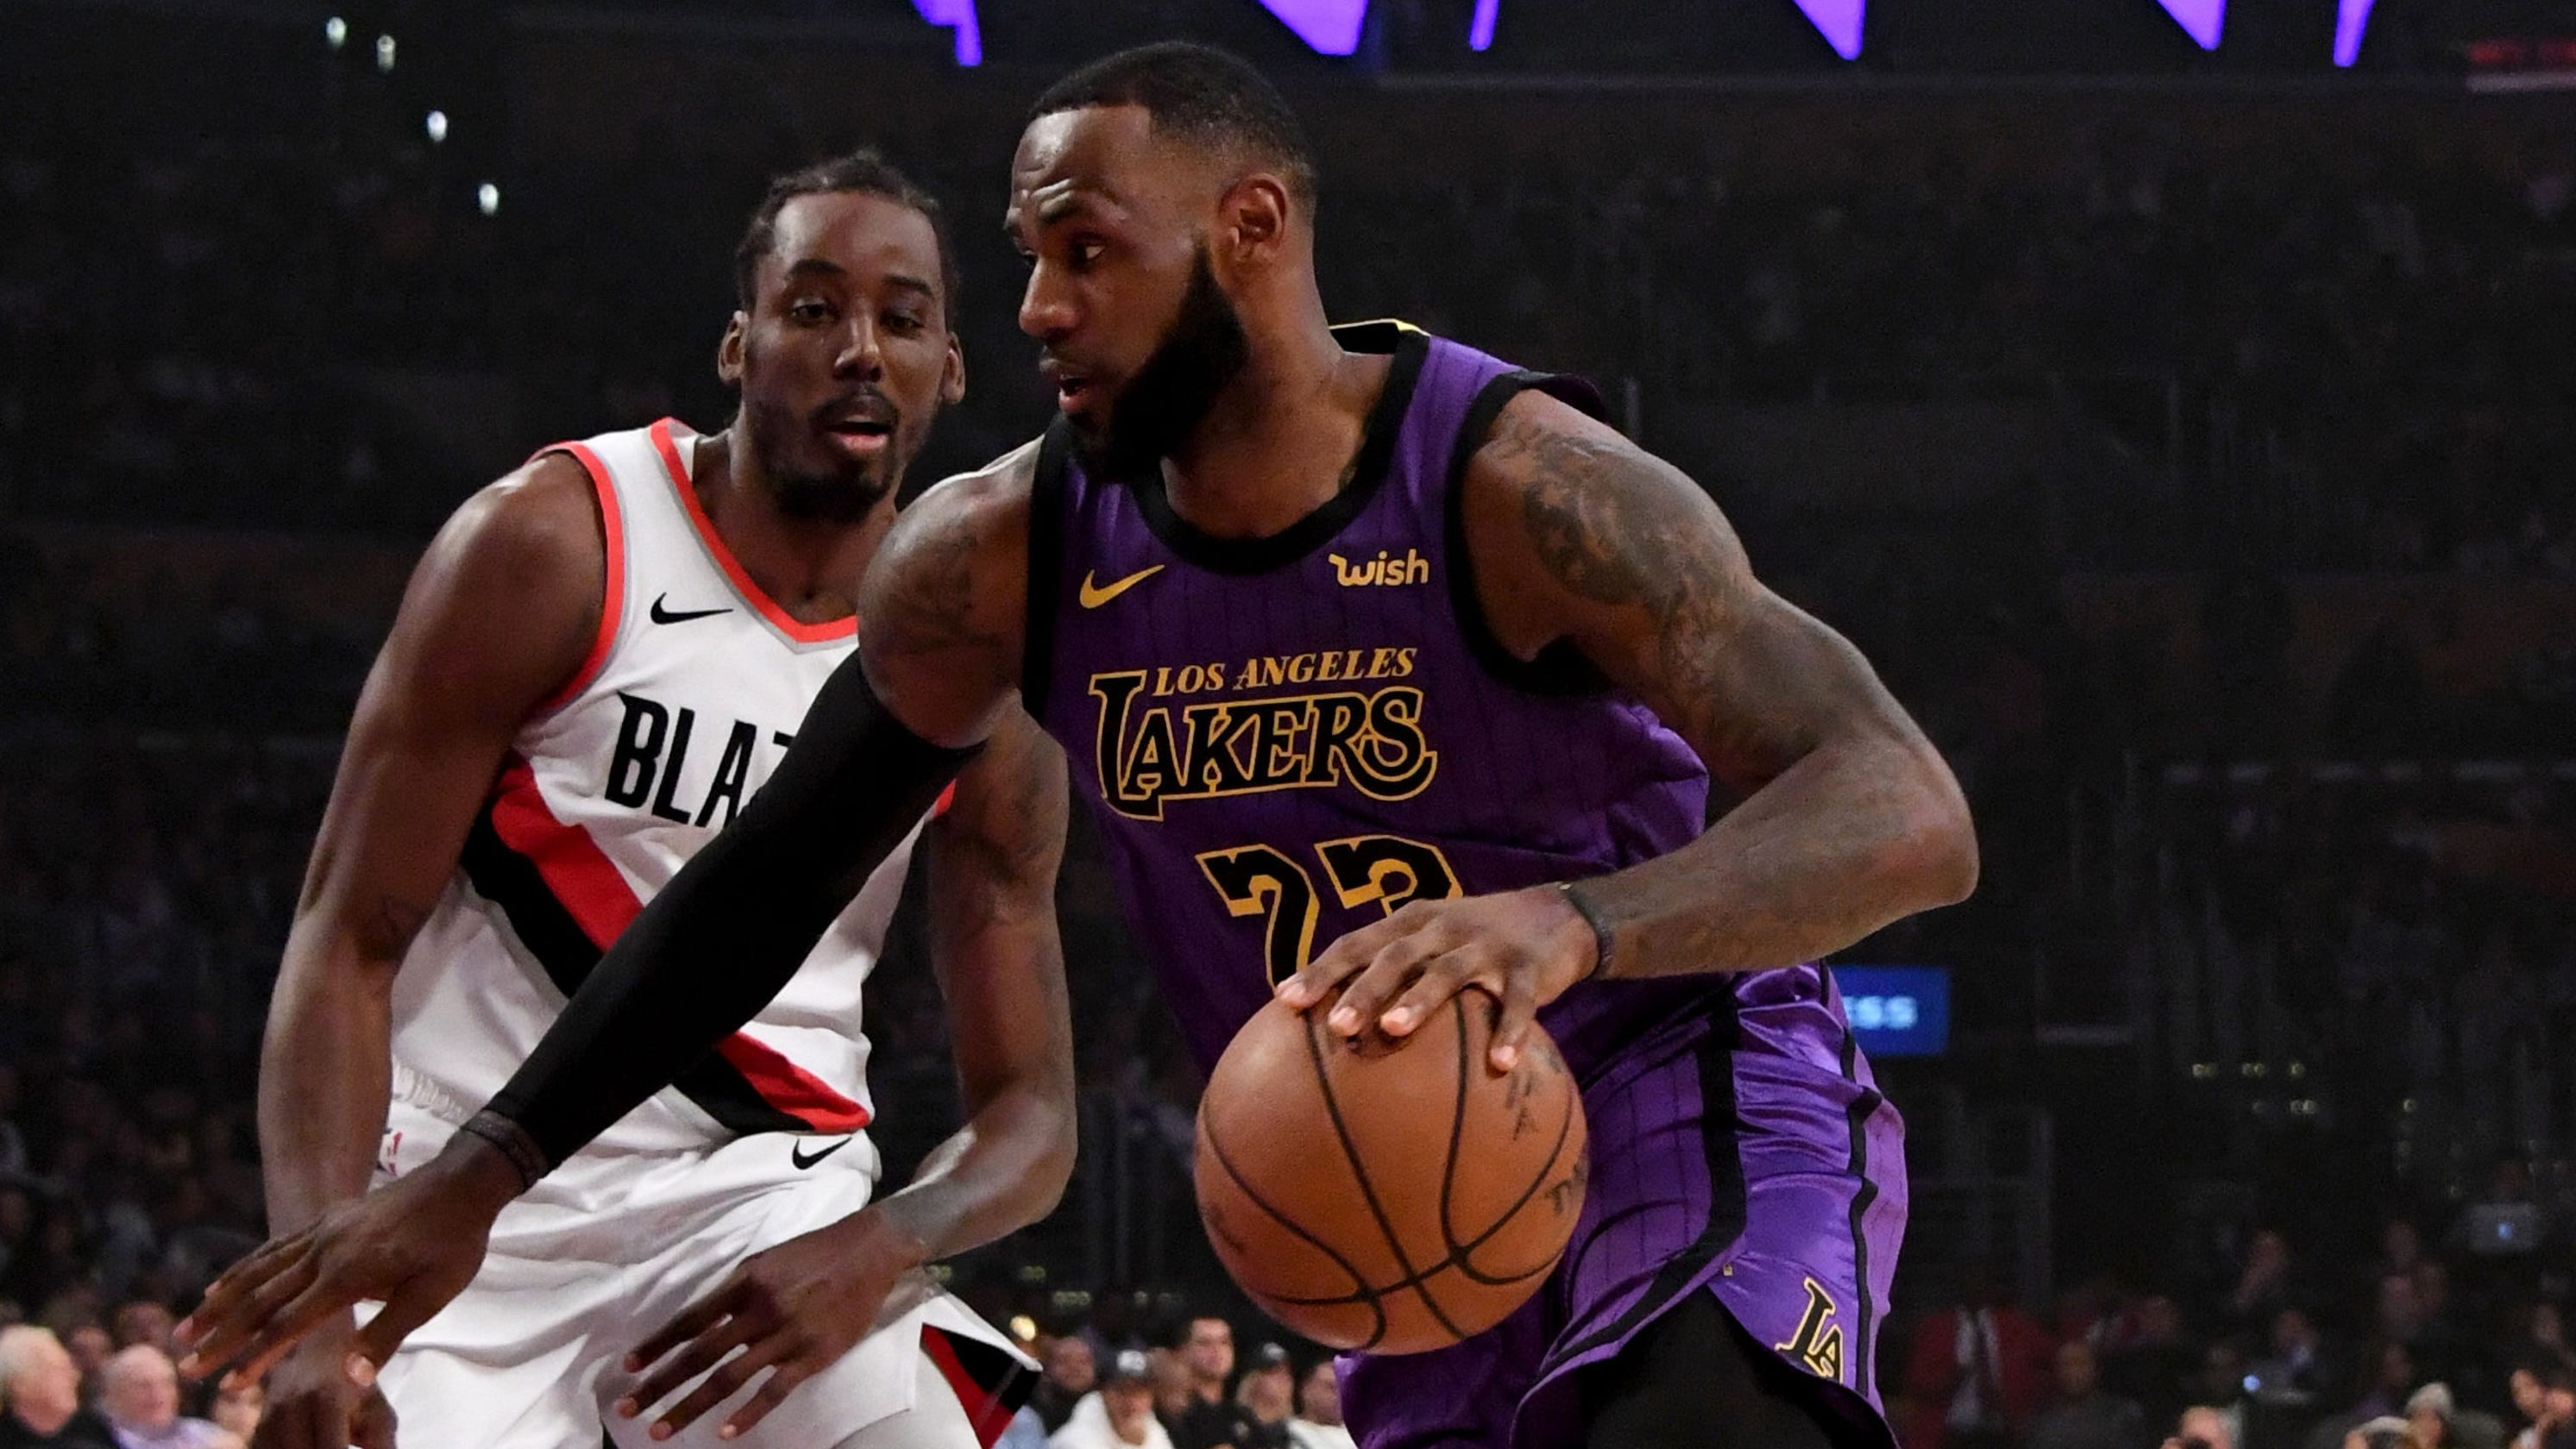 1b27ebb1875 Lakers  LeBron James passes WIlt Chamberlain for fifth place on NBA  all-time scoring list